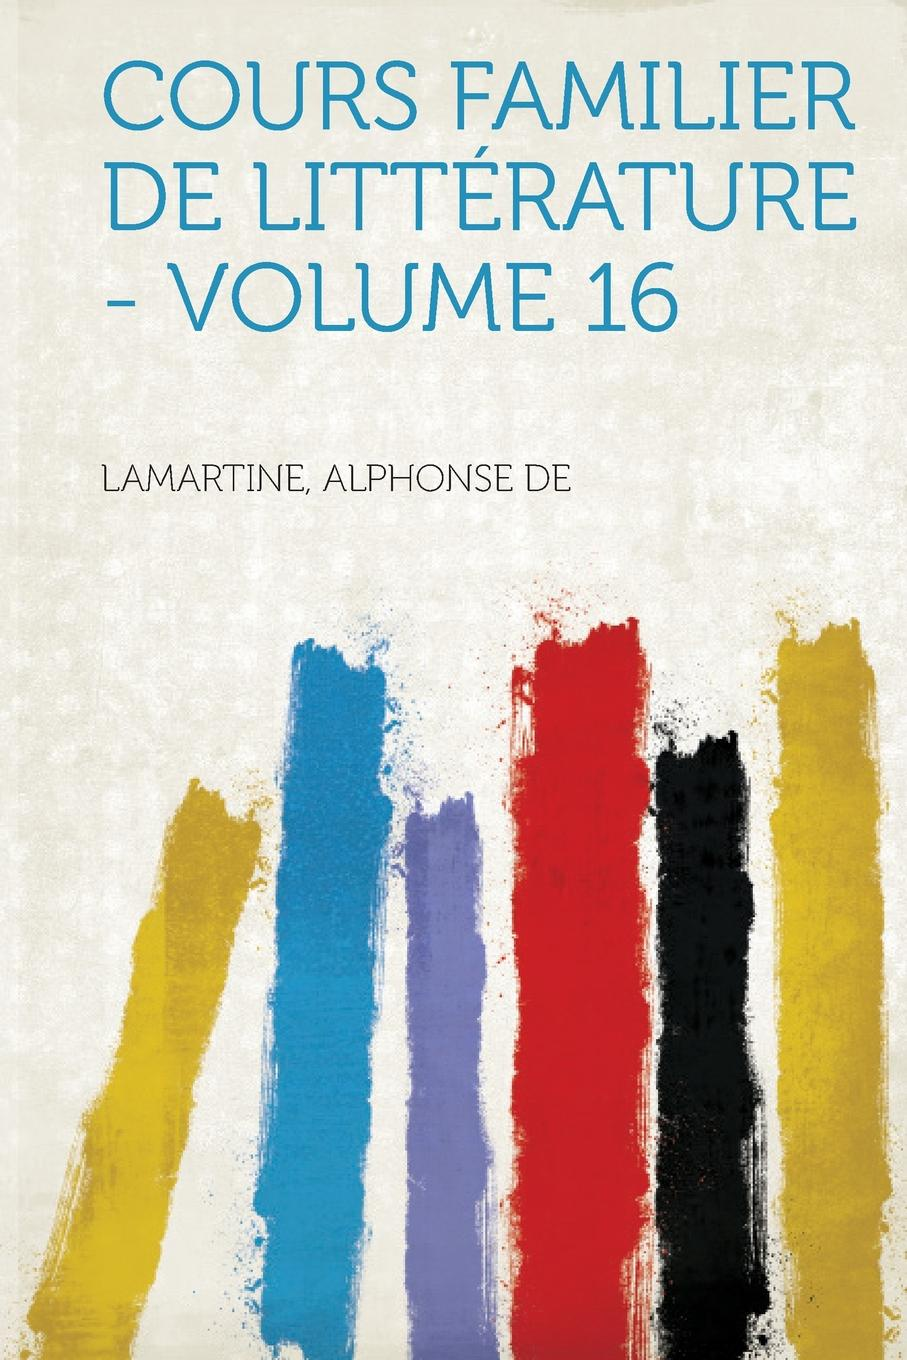 Cours familier de Litterature - Volume 16